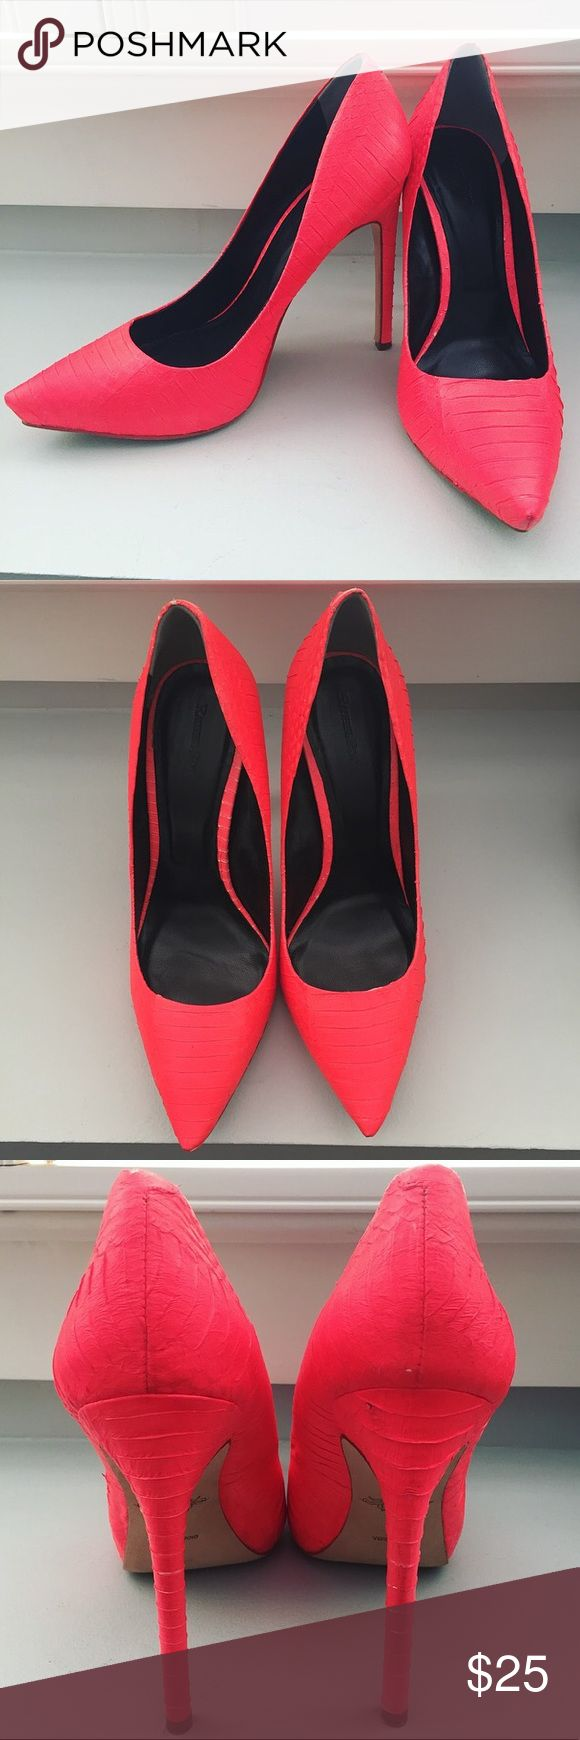 Rachel Roy Neon Pumps Rachel Roy - Size 8.5 - Neon Pink Pumps. These shoes are sure to make a statement! I️n good condition! This girl is smoke free/pet free and takes care of everything I️ own! Rachel Roy Shoes Heels